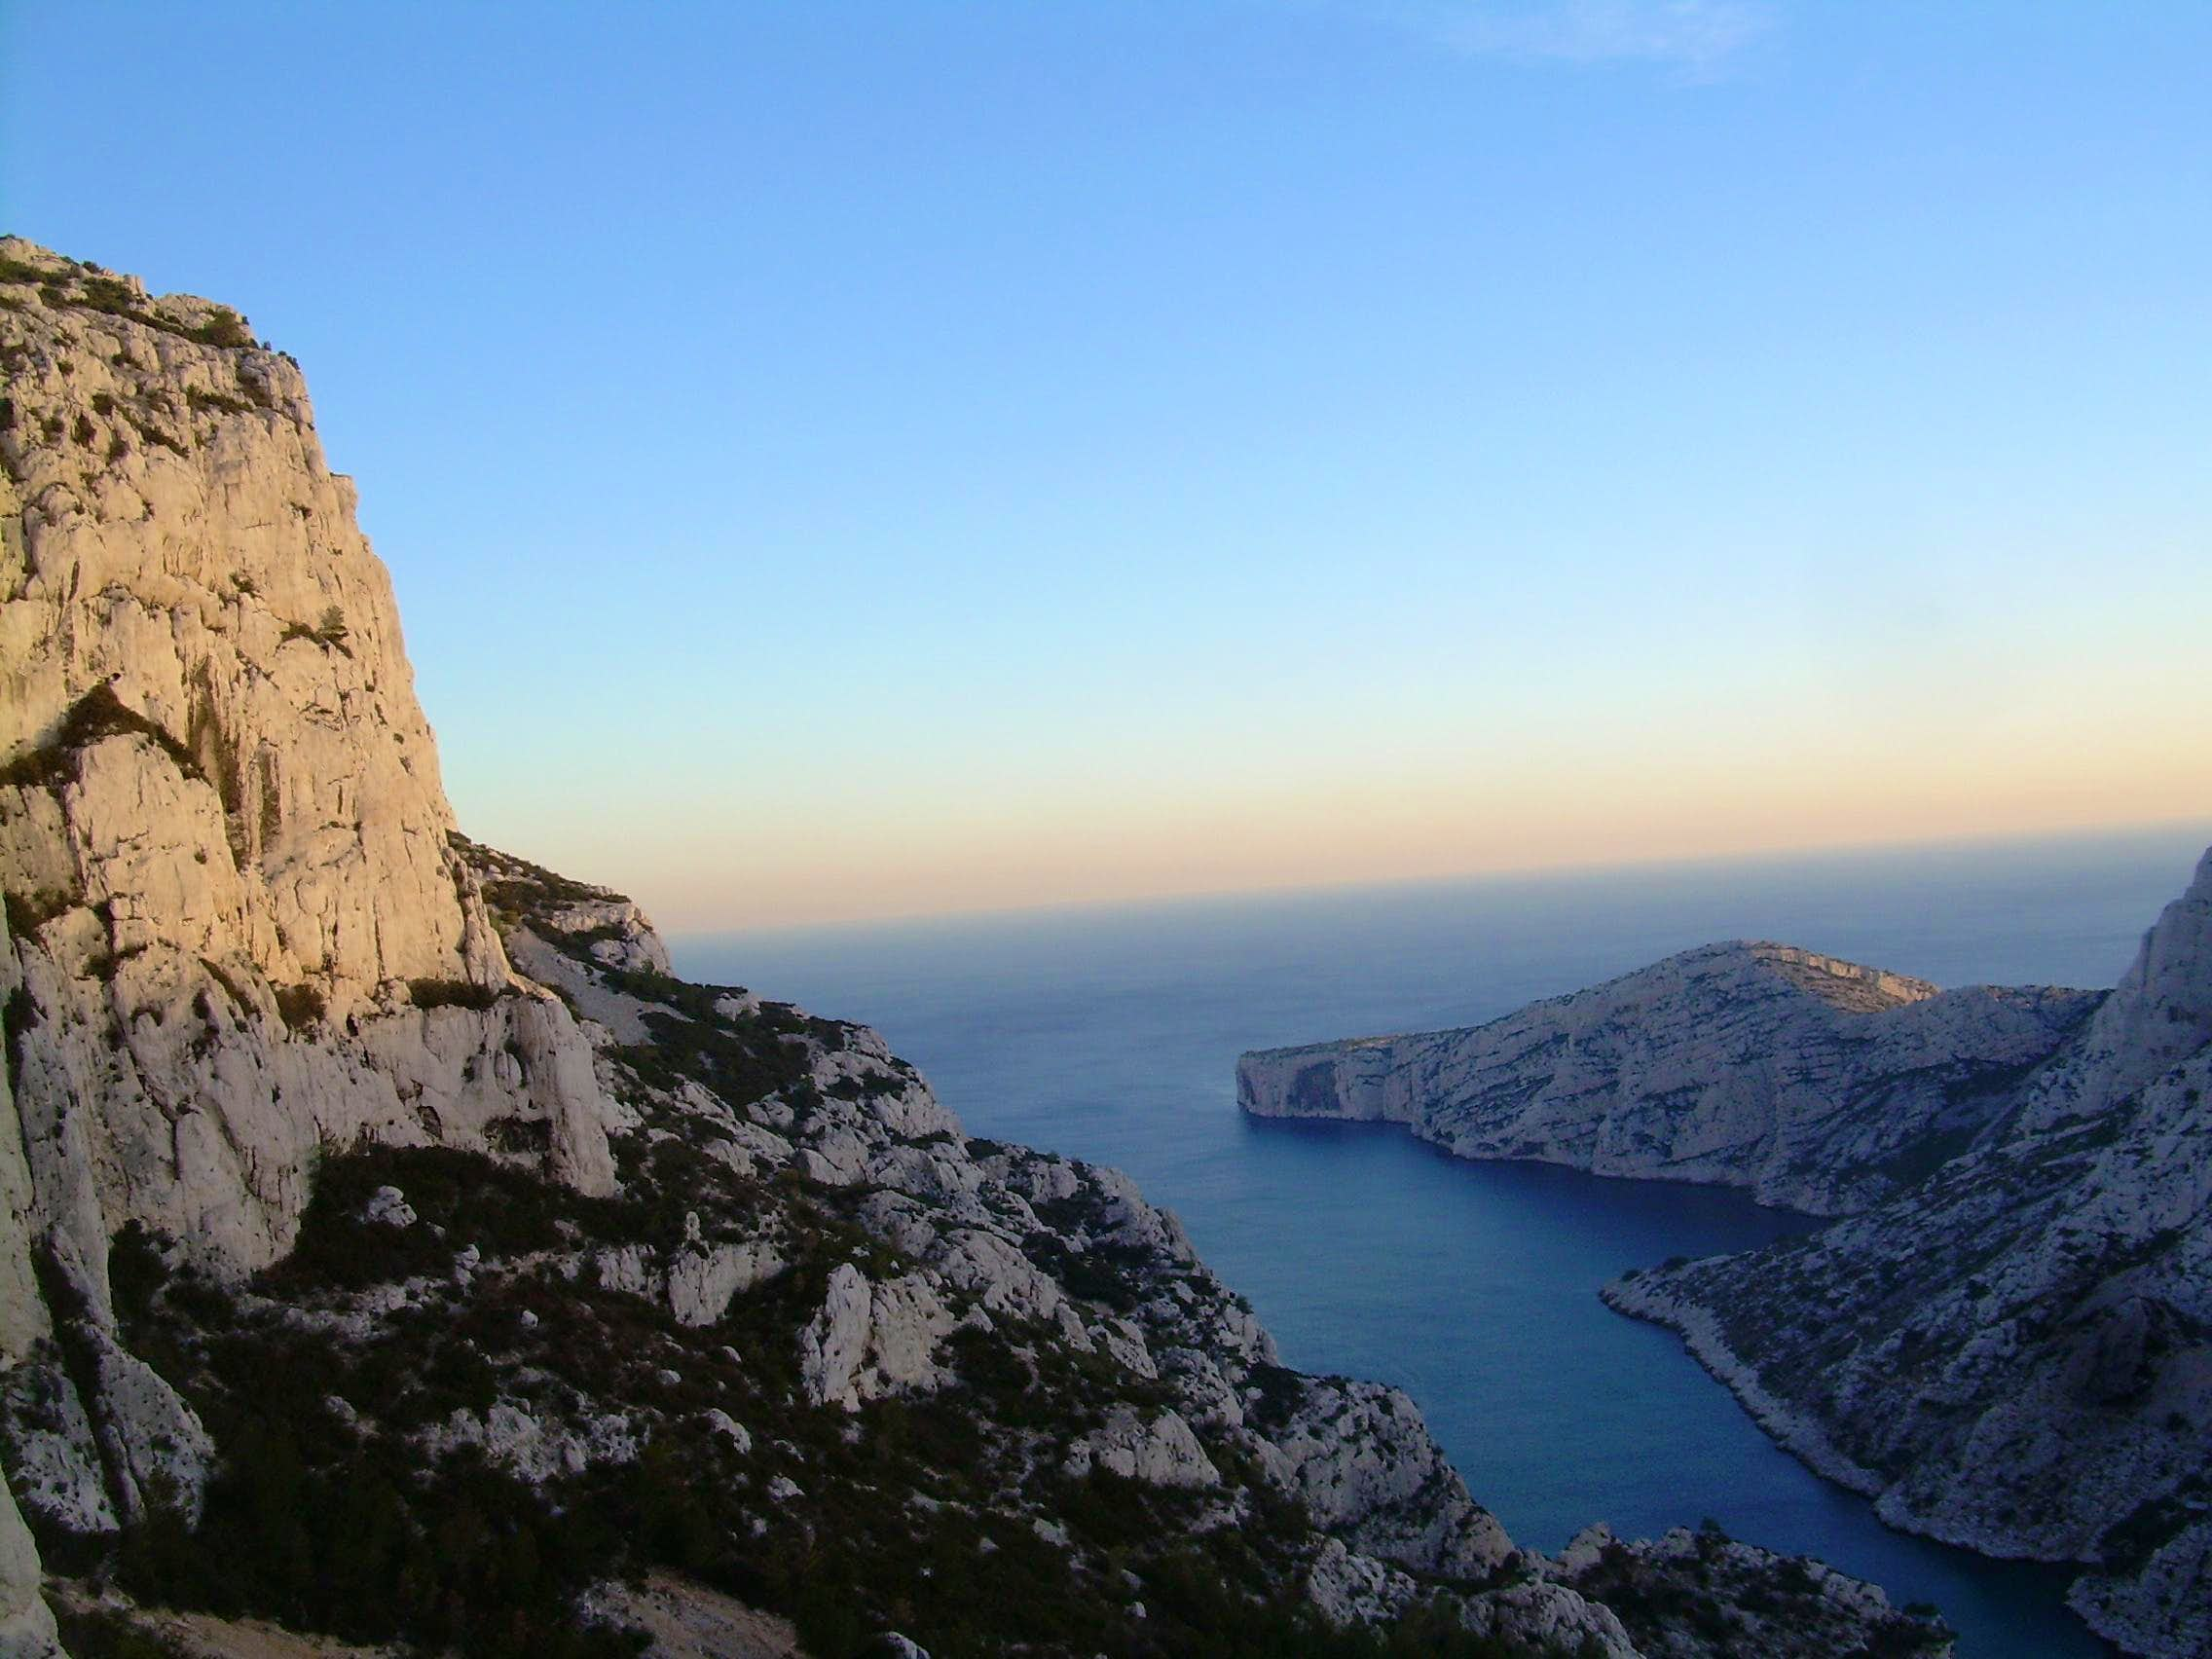 My pictures of the Calanques